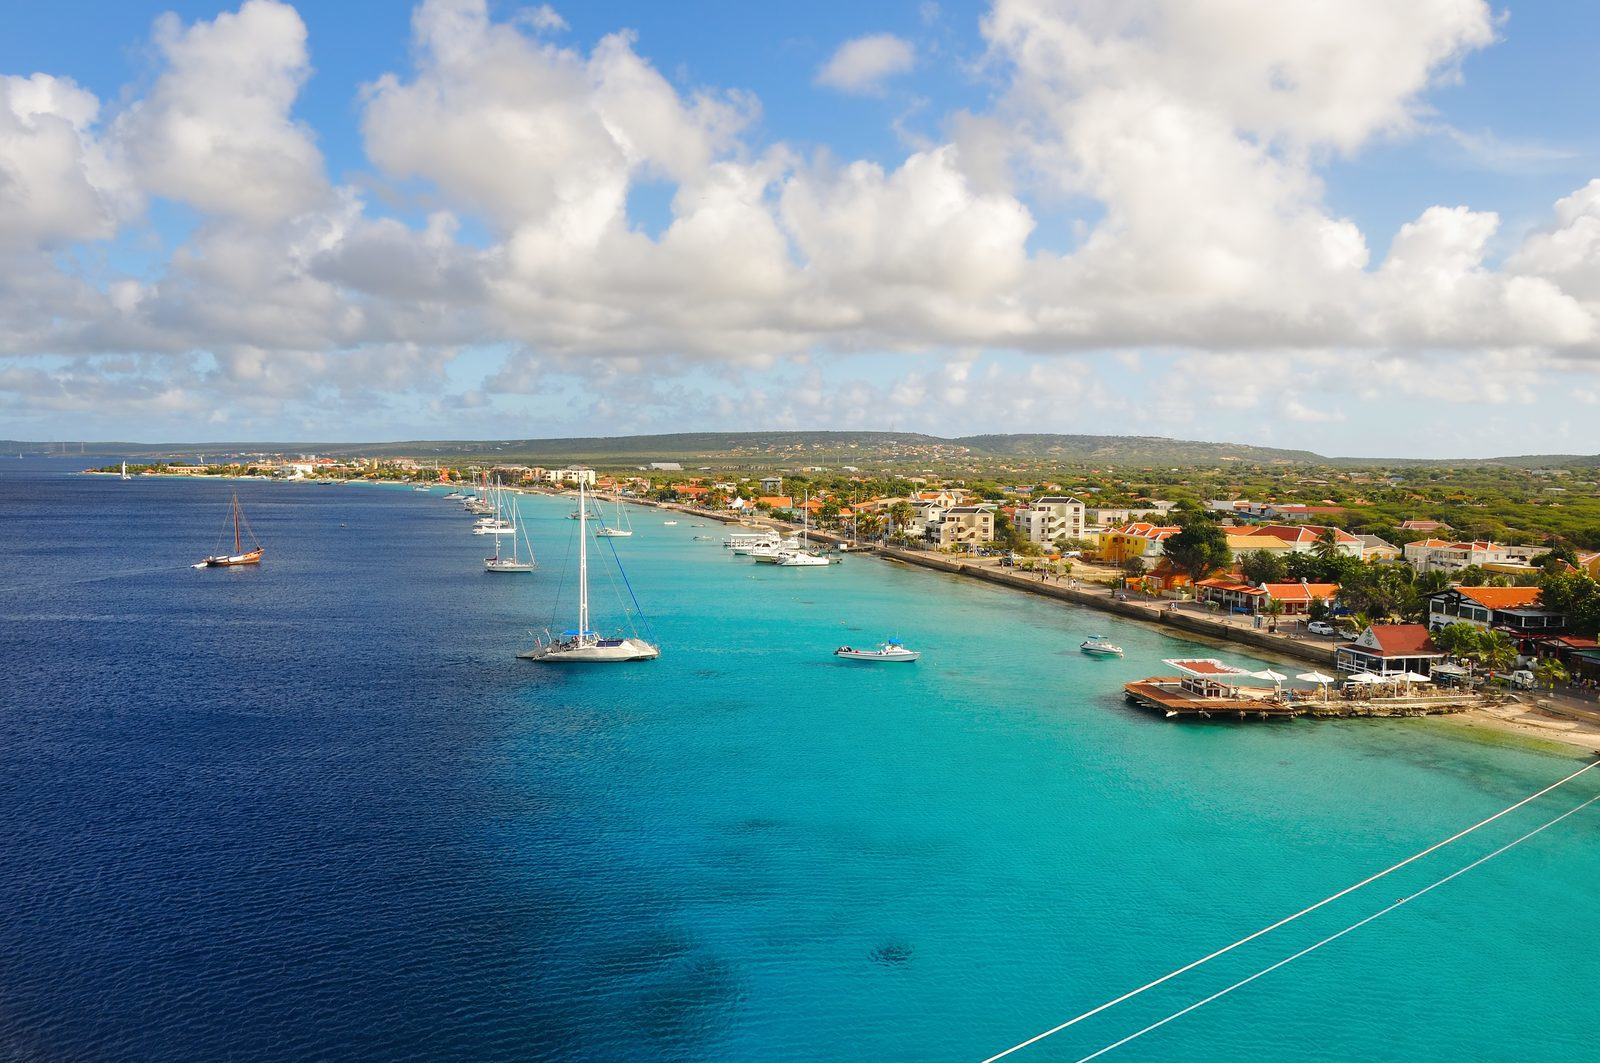 The best places to stay in Bonaire? Take a look at Resort Bonaire and other facilities of this beautiful island.